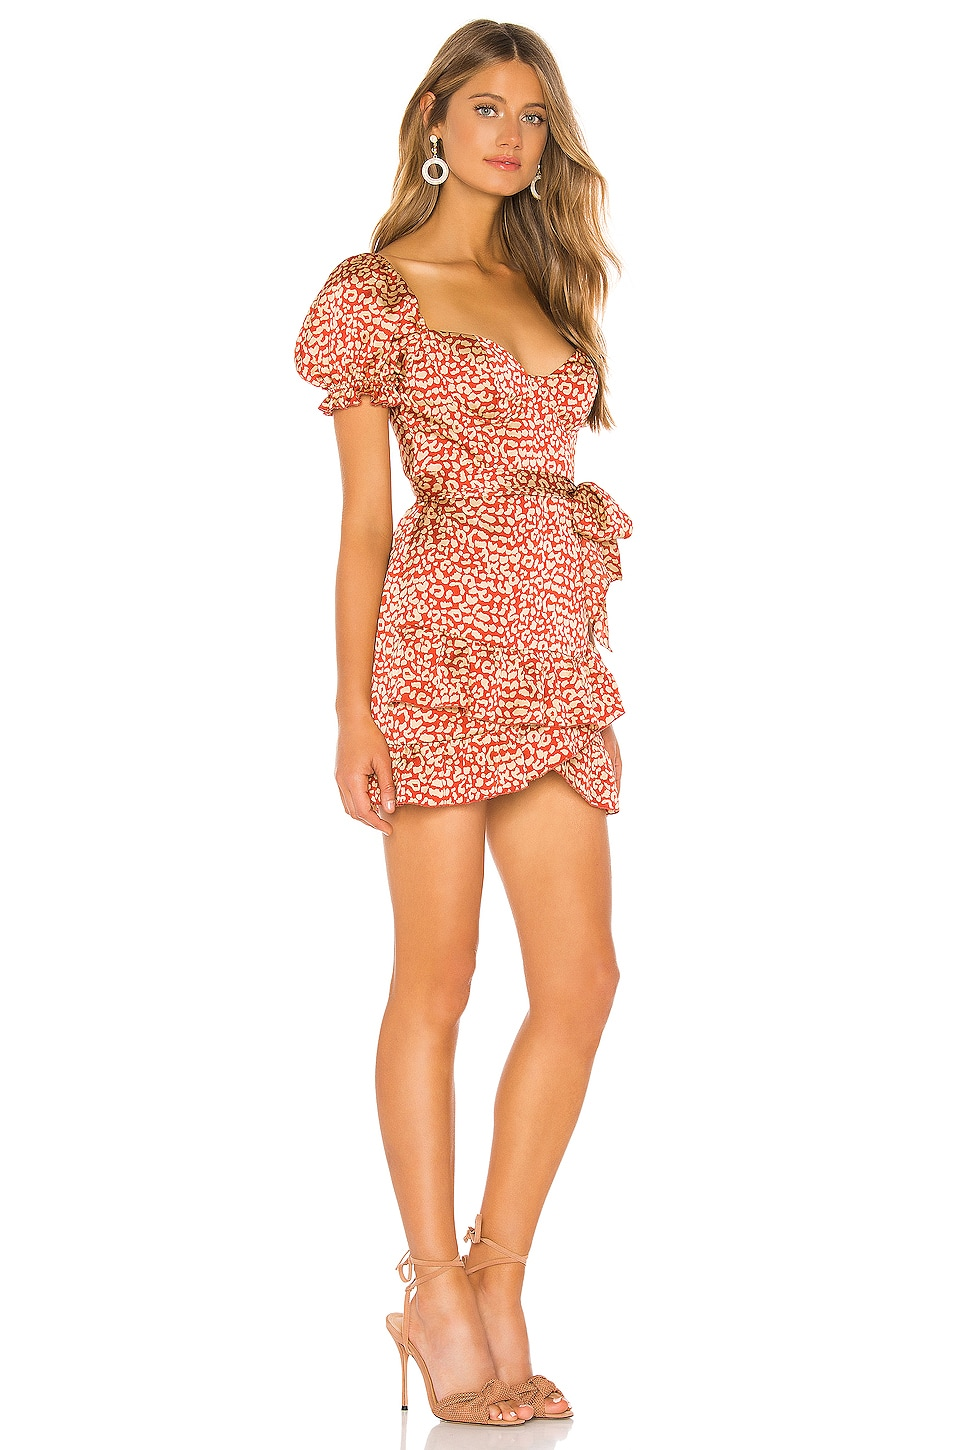 Shiloh Mini Dress, view 2, click to view large image.